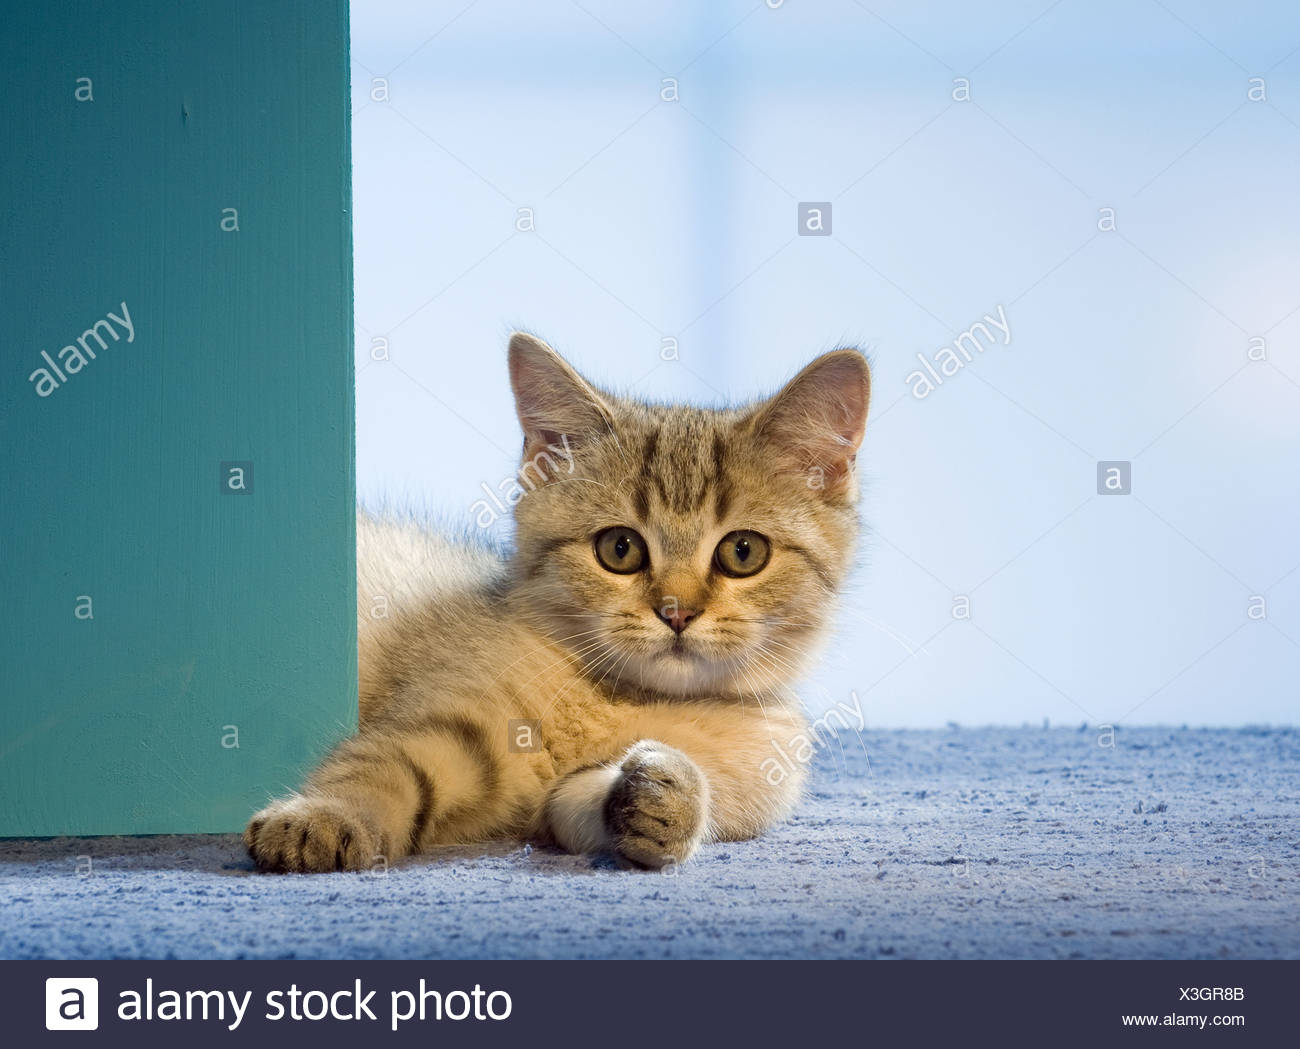 Pets Corner Stock Photos